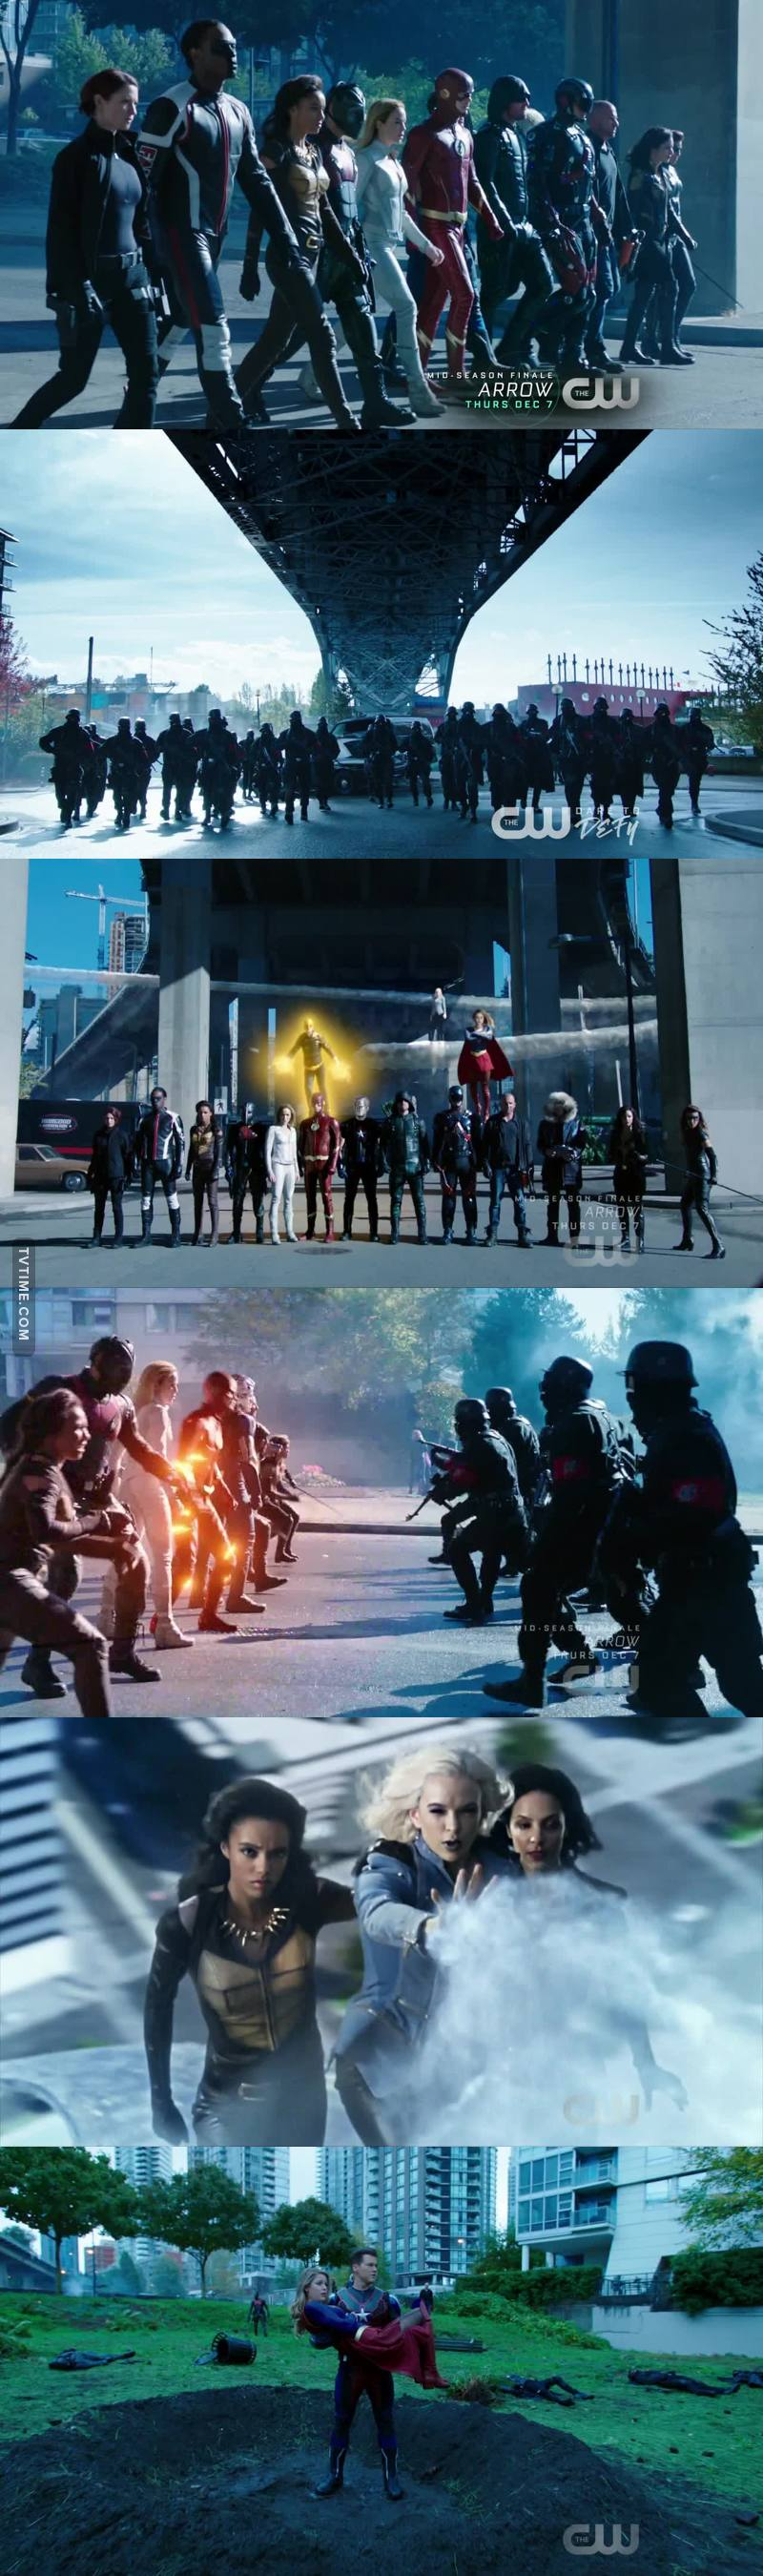 The fight scene in the end was so good! Loved the entrance of all the superheroes, Killer Frost making an ice path to the evil Waverider and the Steel Man catching The Girl of Steel. All in all a great end to a great crossover👏🏼